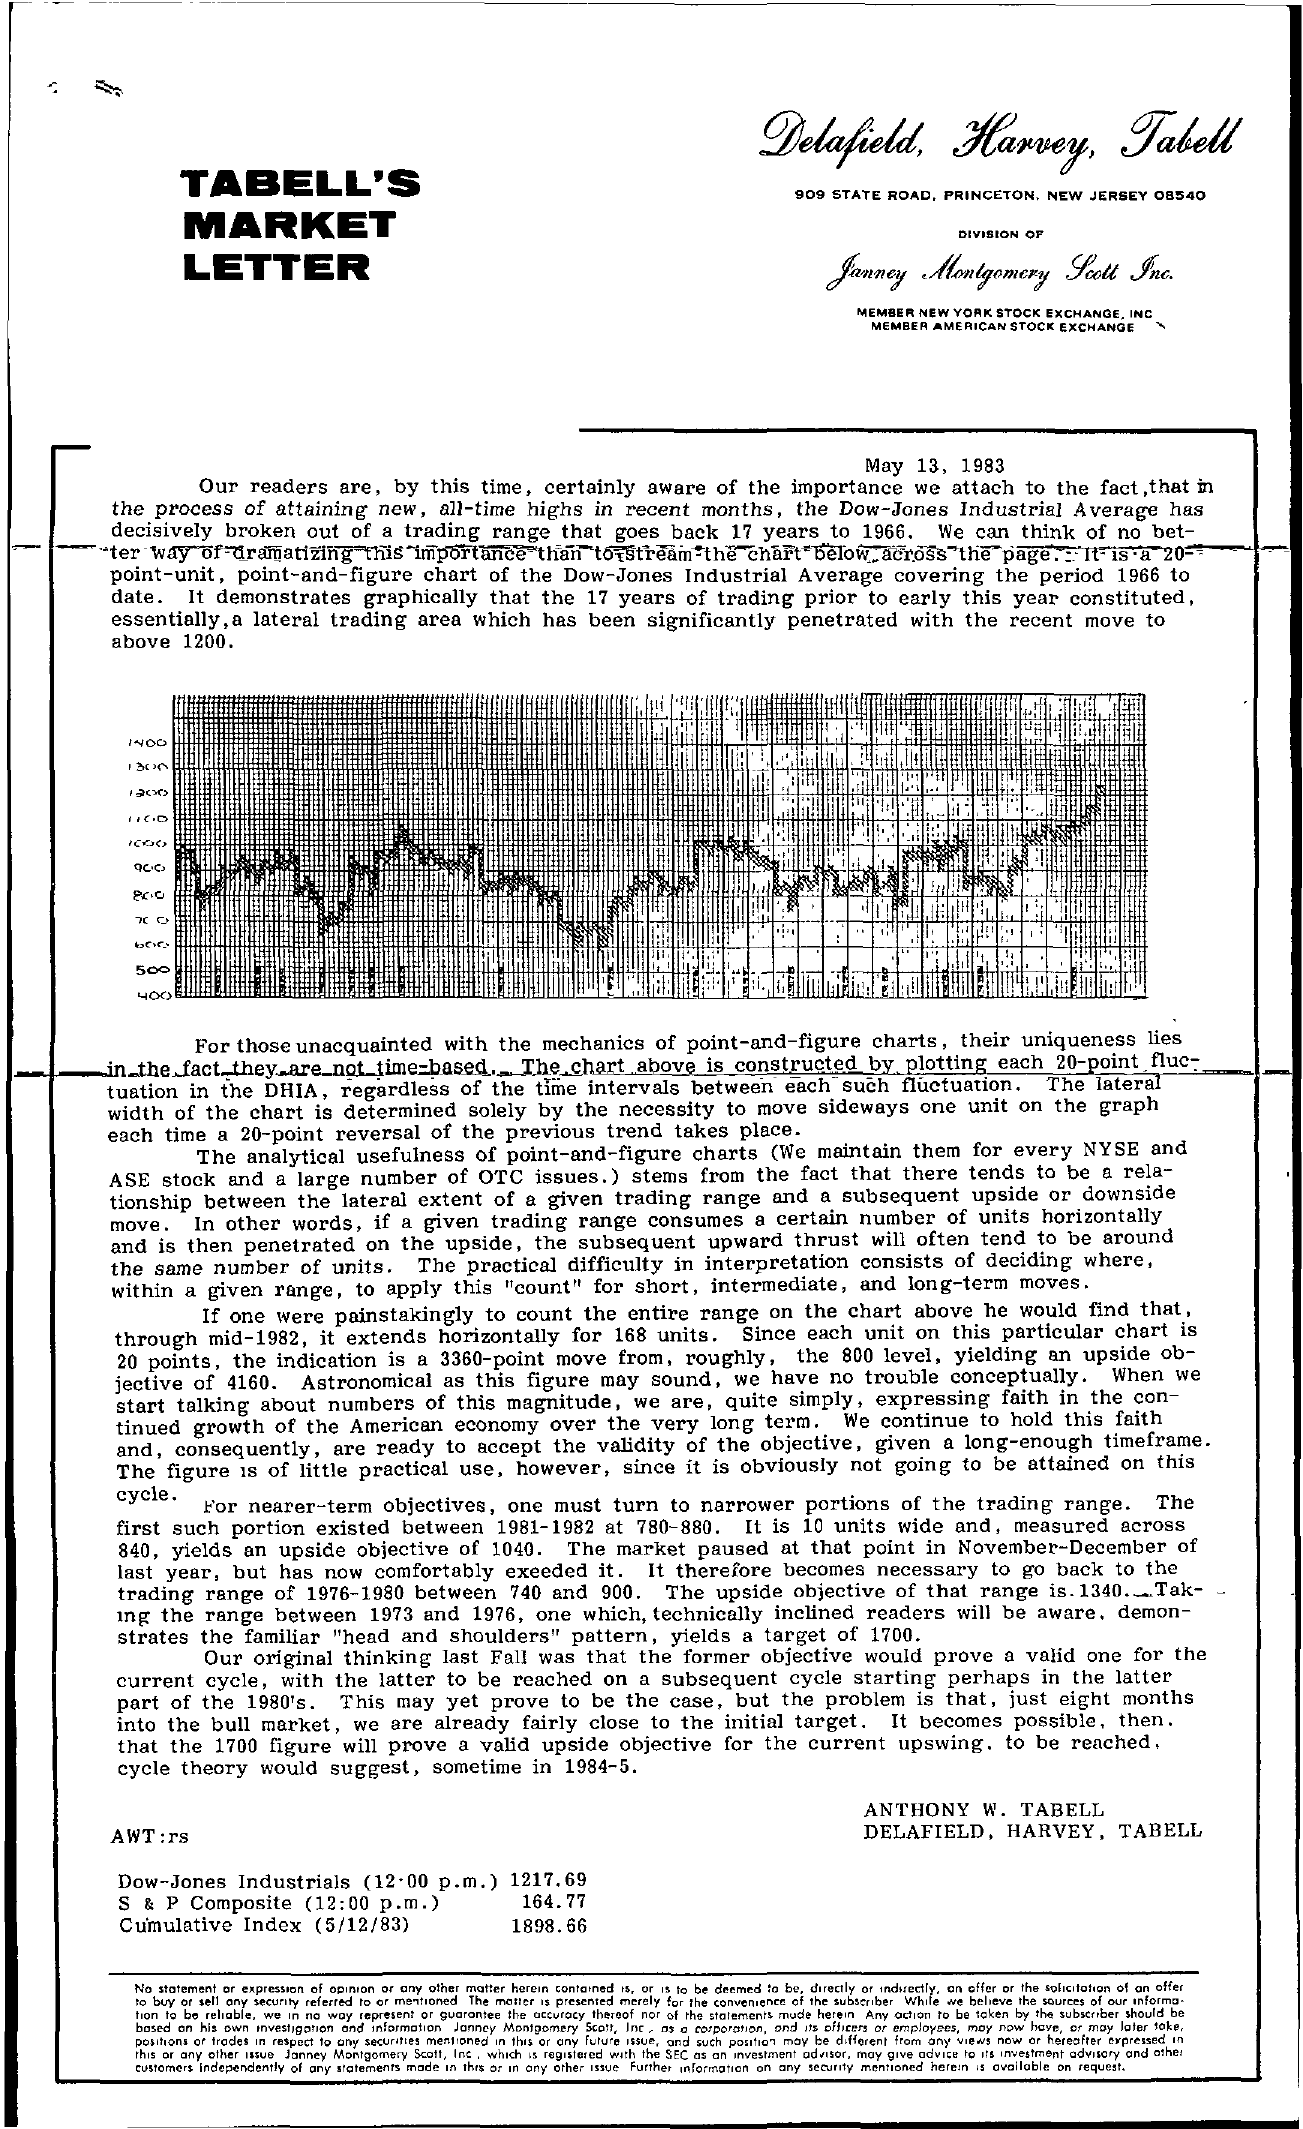 Tabell's Market Letter - May 13, 1983